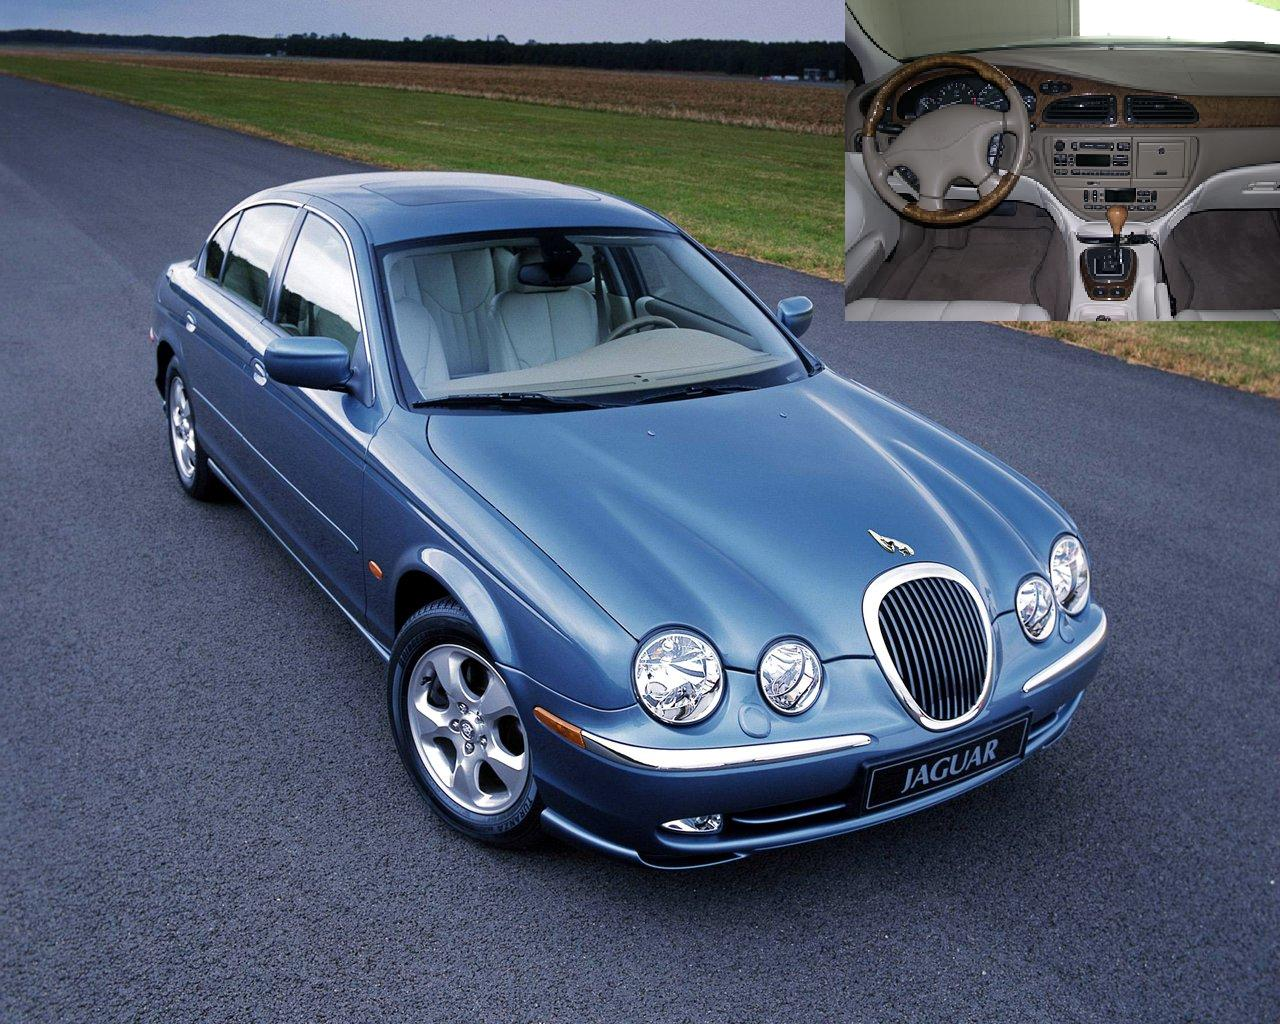 2002 jaguar s type pictures cargurus. Black Bedroom Furniture Sets. Home Design Ideas